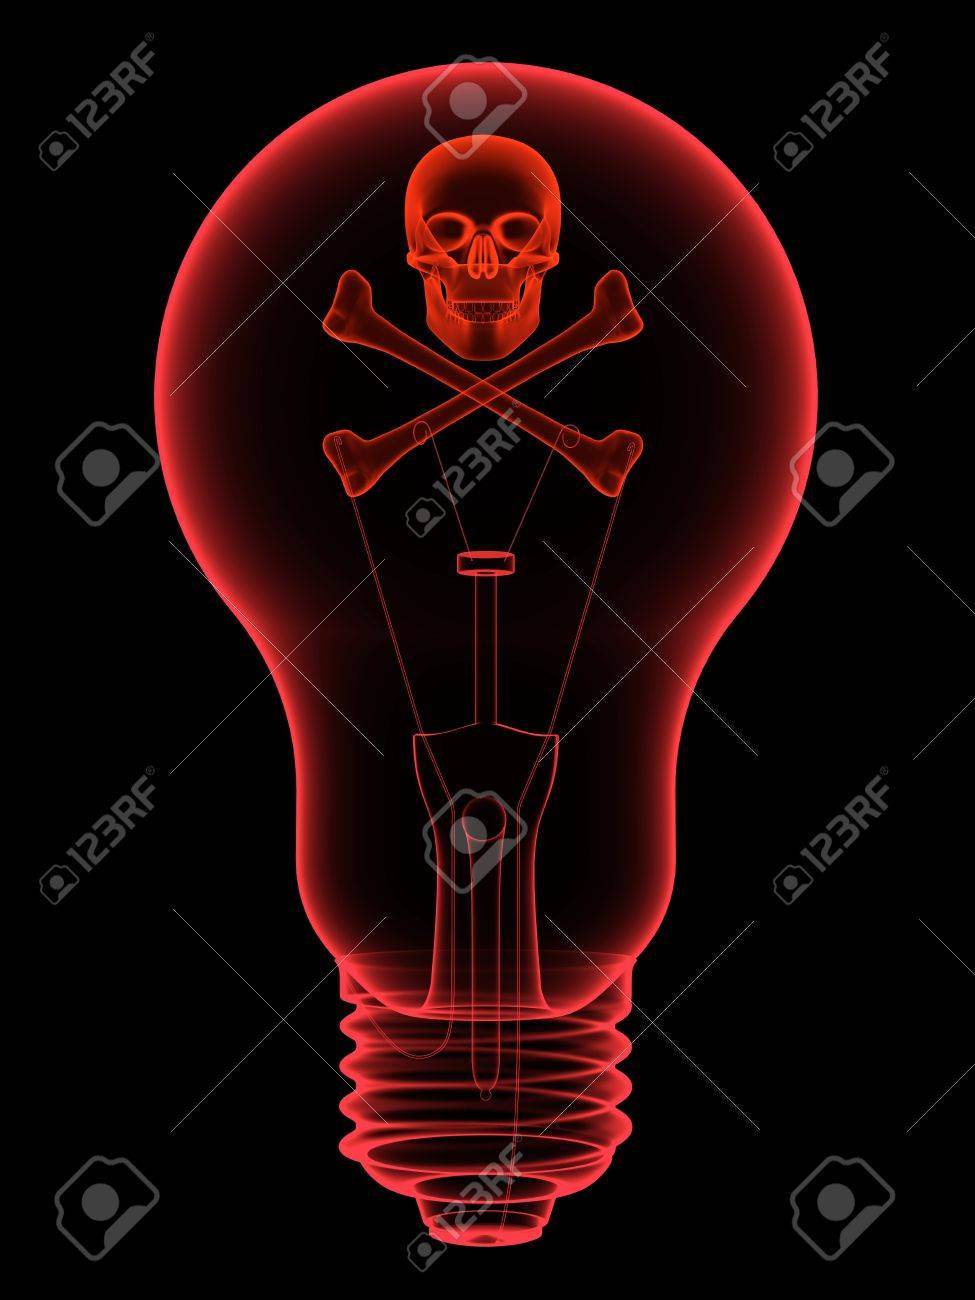 Red lightbulb with skull and crossbones x-ray silhouette on black. High resolution 3D image Stock Photo - 12405032